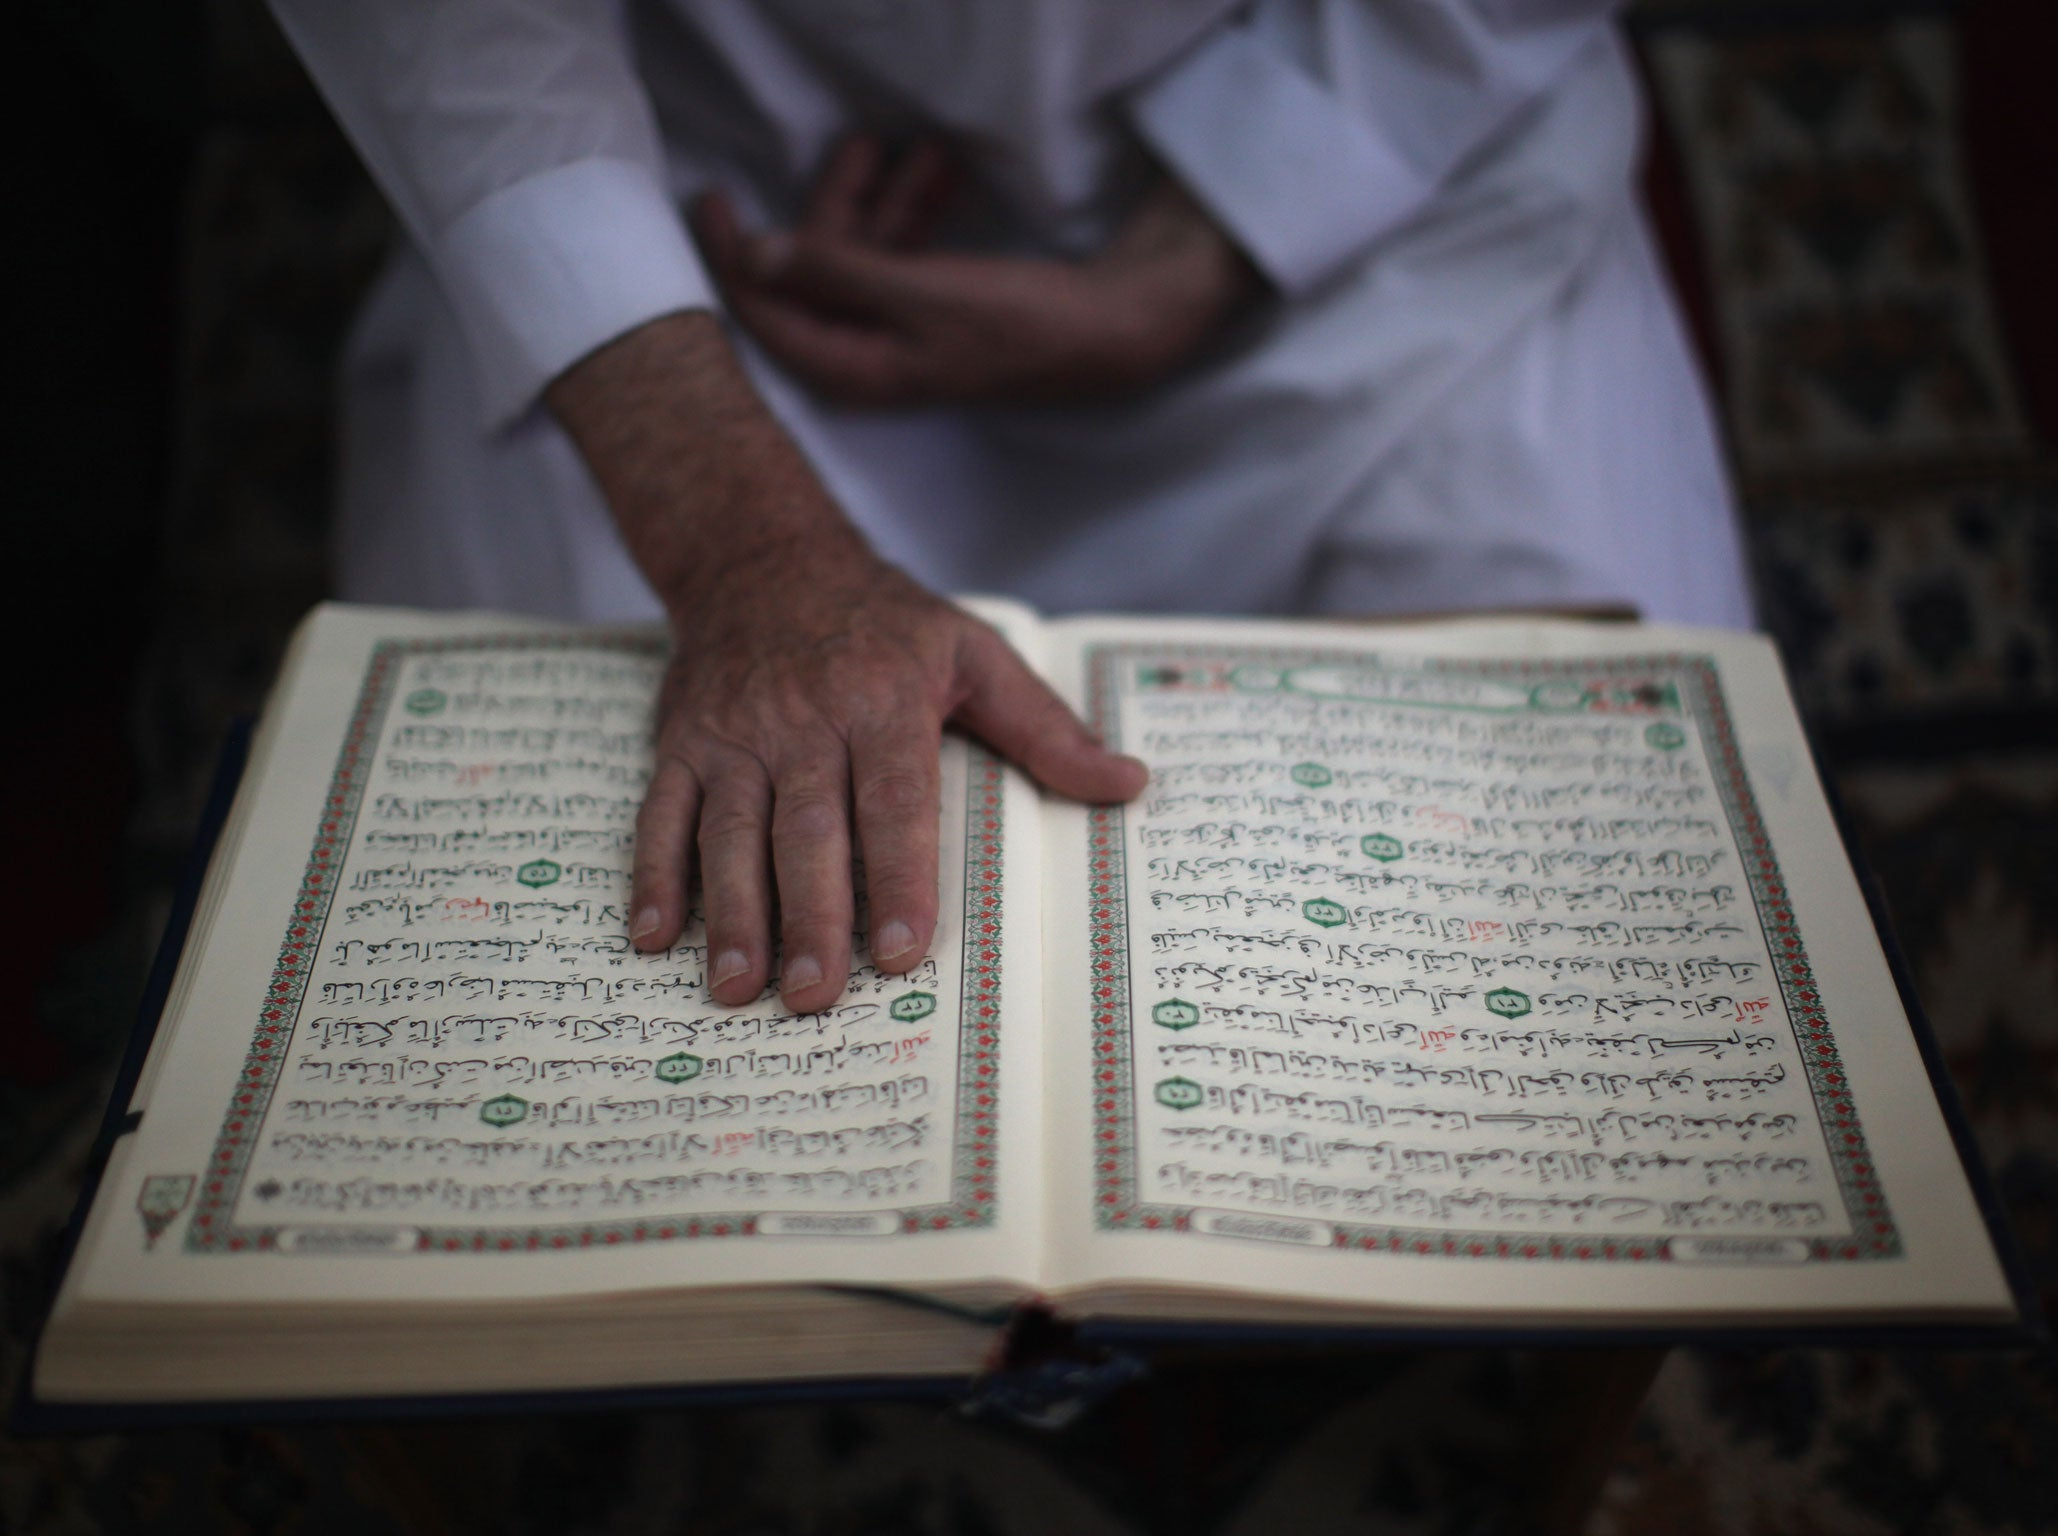 You don't need to look much further than the Quran for proof that Islam is a peaceful religion